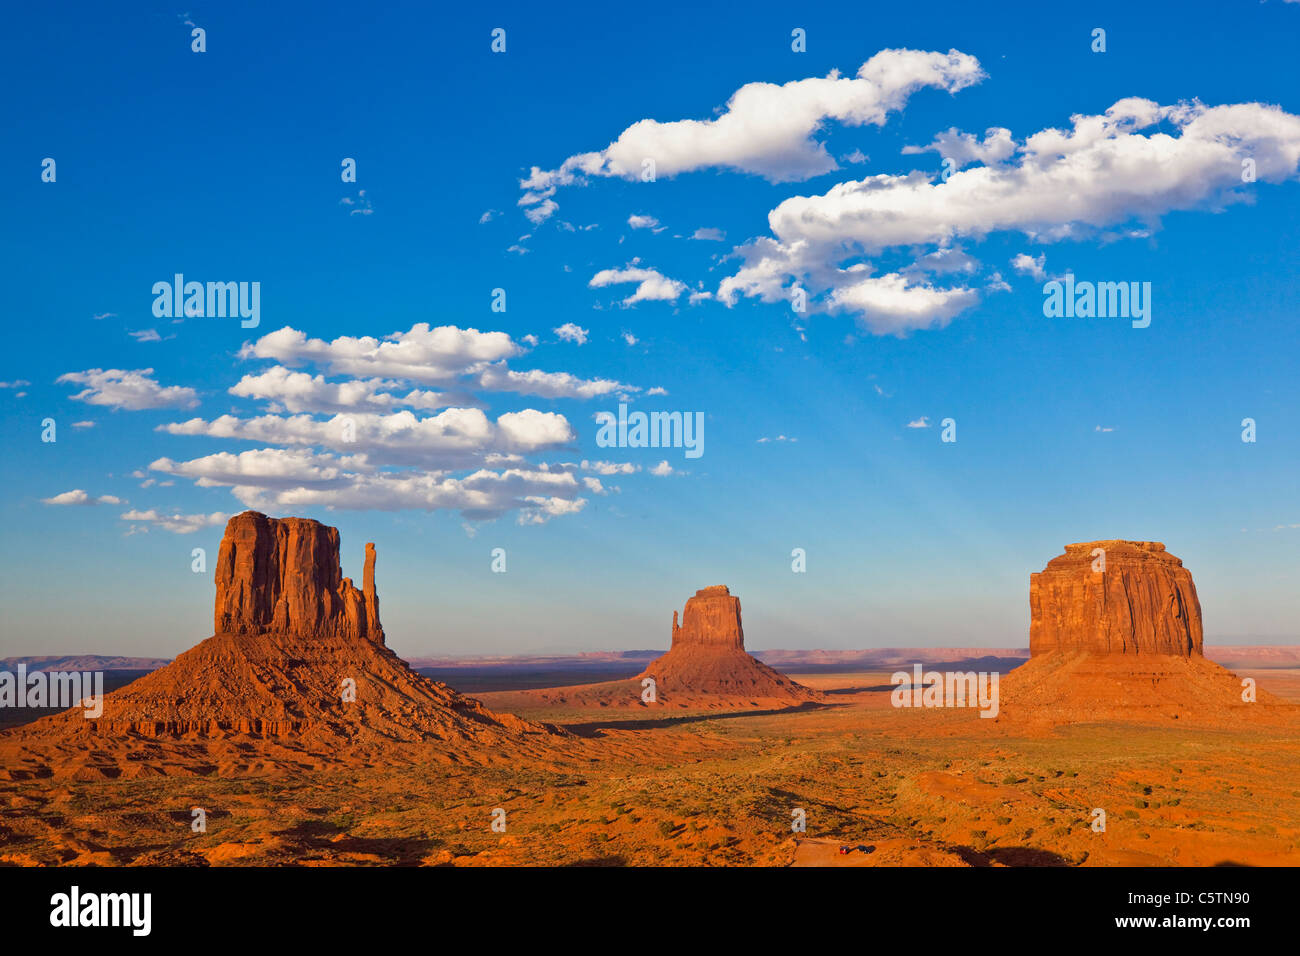 USA, Arizona, Monument Valley Tribal Park, West Mitten Butte - Stock Image